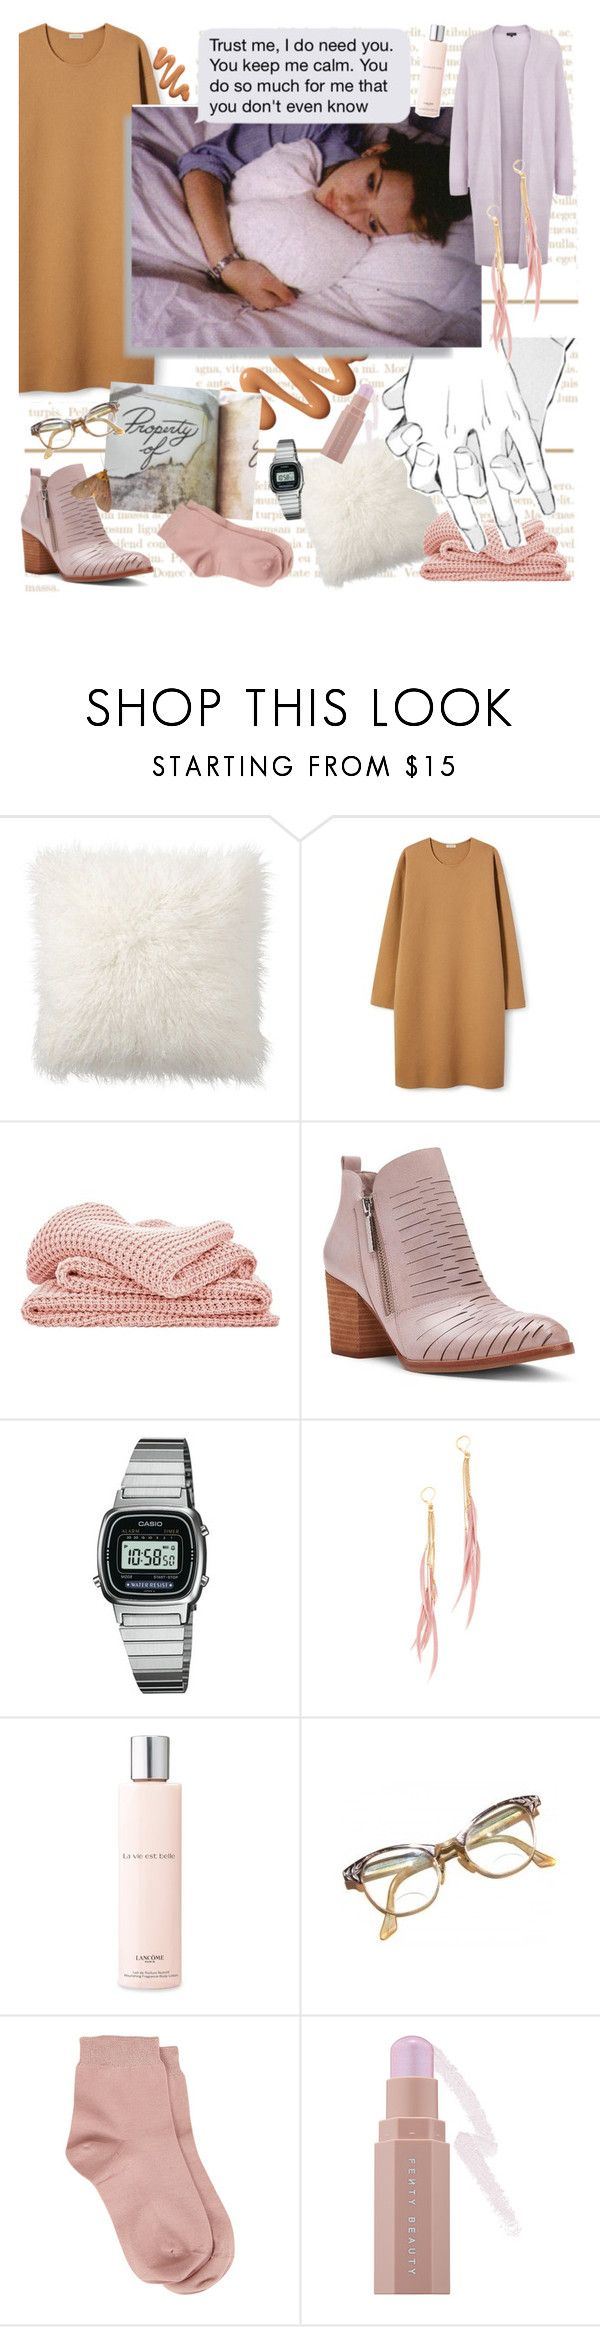 """Reality Ruined My Life"" by batbekka12 ❤ liked on Polyvore featuring Pottery Barn, Sheridan, Donald J Pliner, Casio, Shashi, Lancôme, Retrò, Maria La Rosa and Puma"